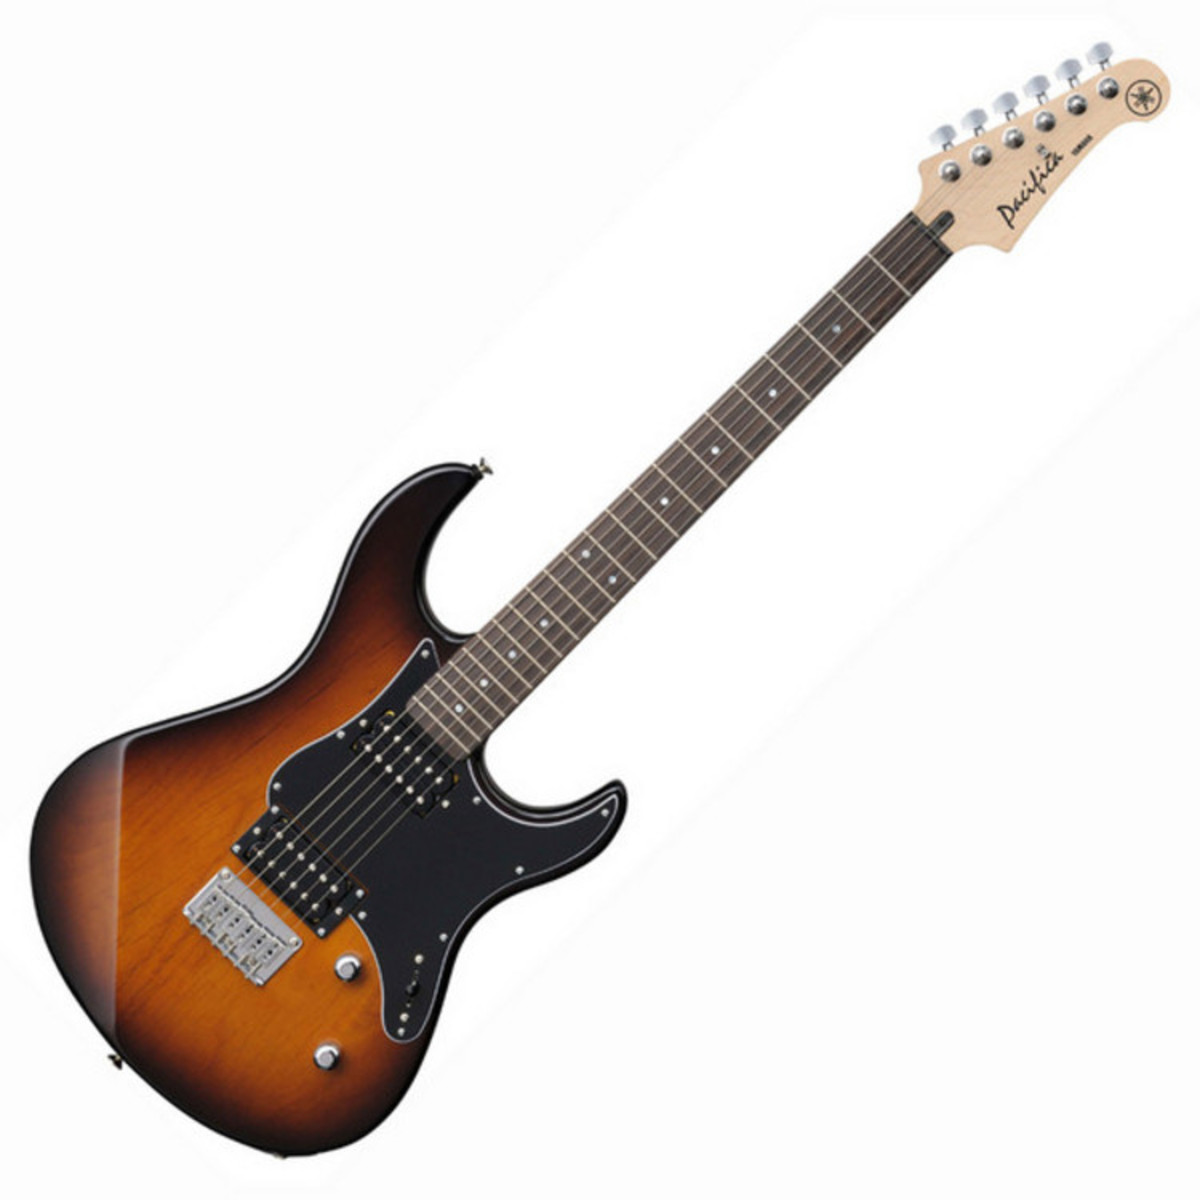 Yamaha pacifica 120h electric guitar tobacco sunburst at for Where are yamaha guitars made